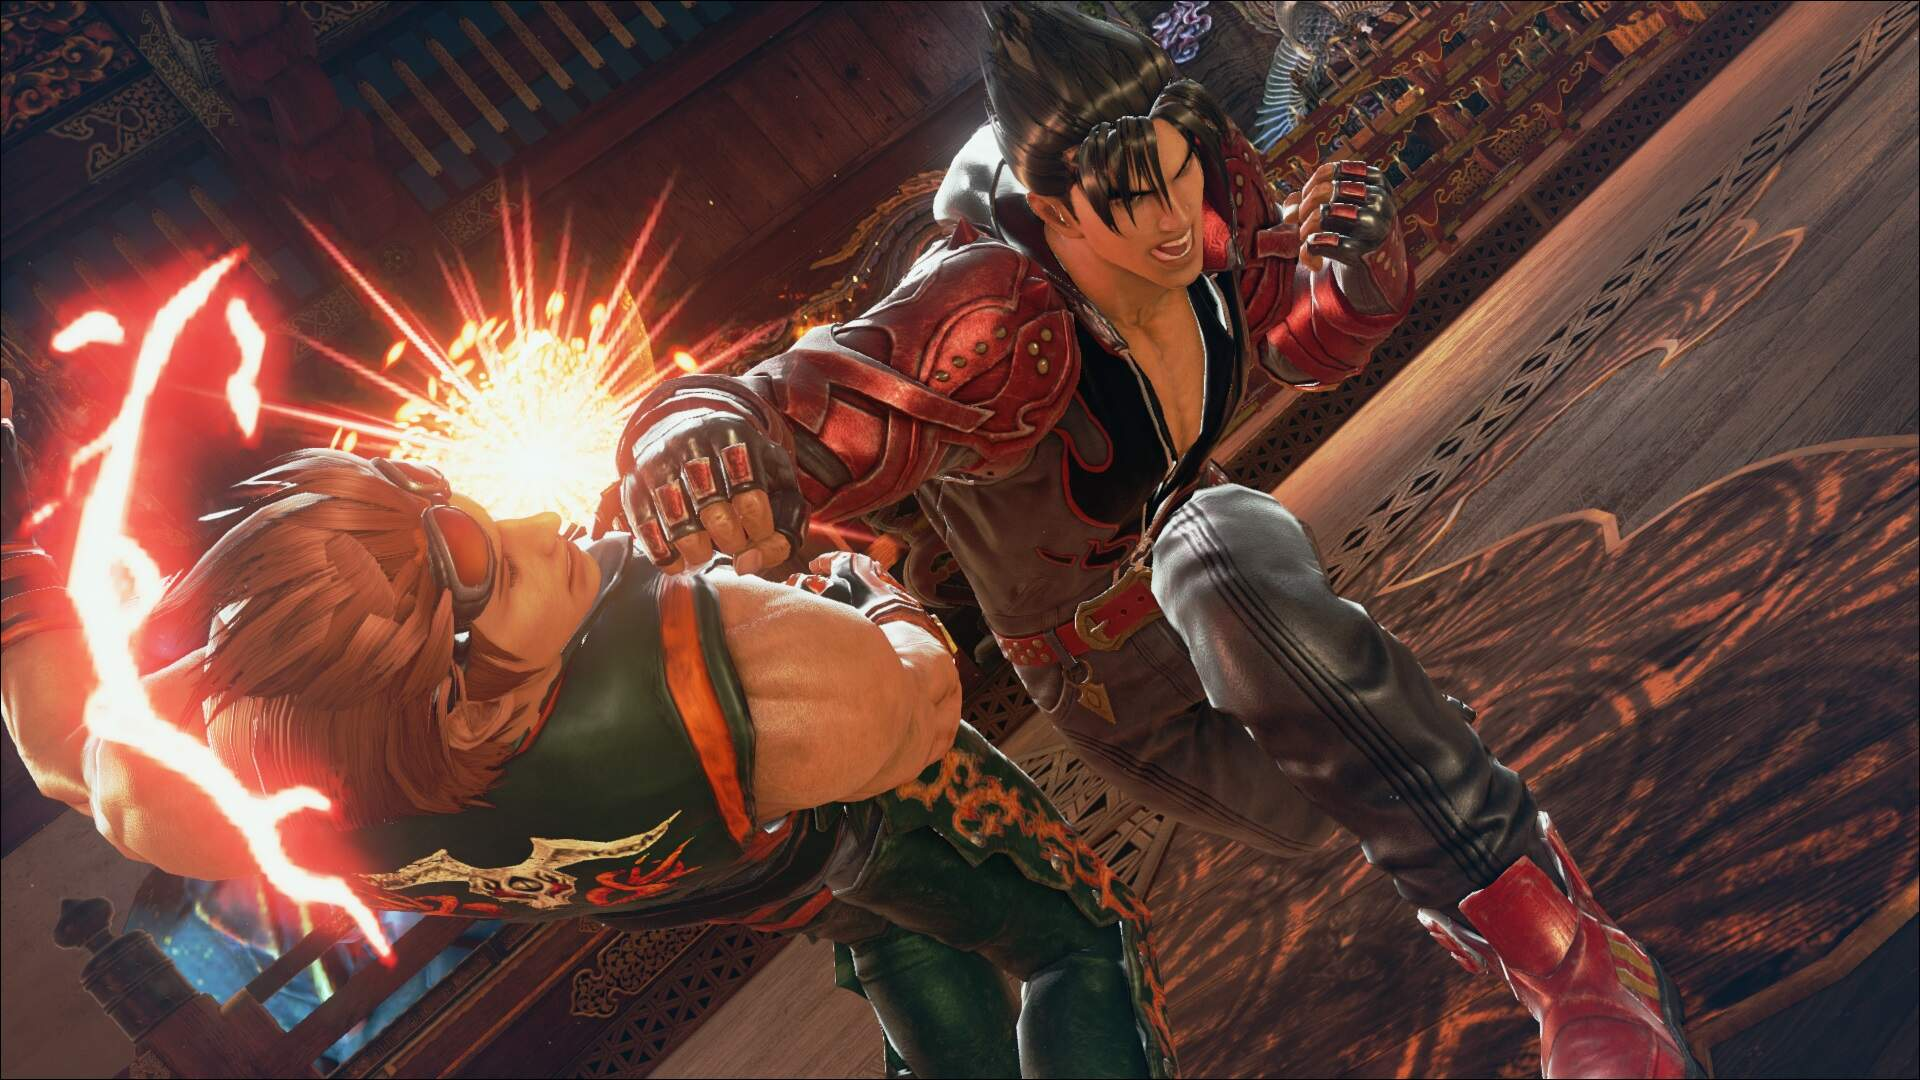 Bandai Namco, Capcom, and More Will Host Fighting Game Roundtable This Friday